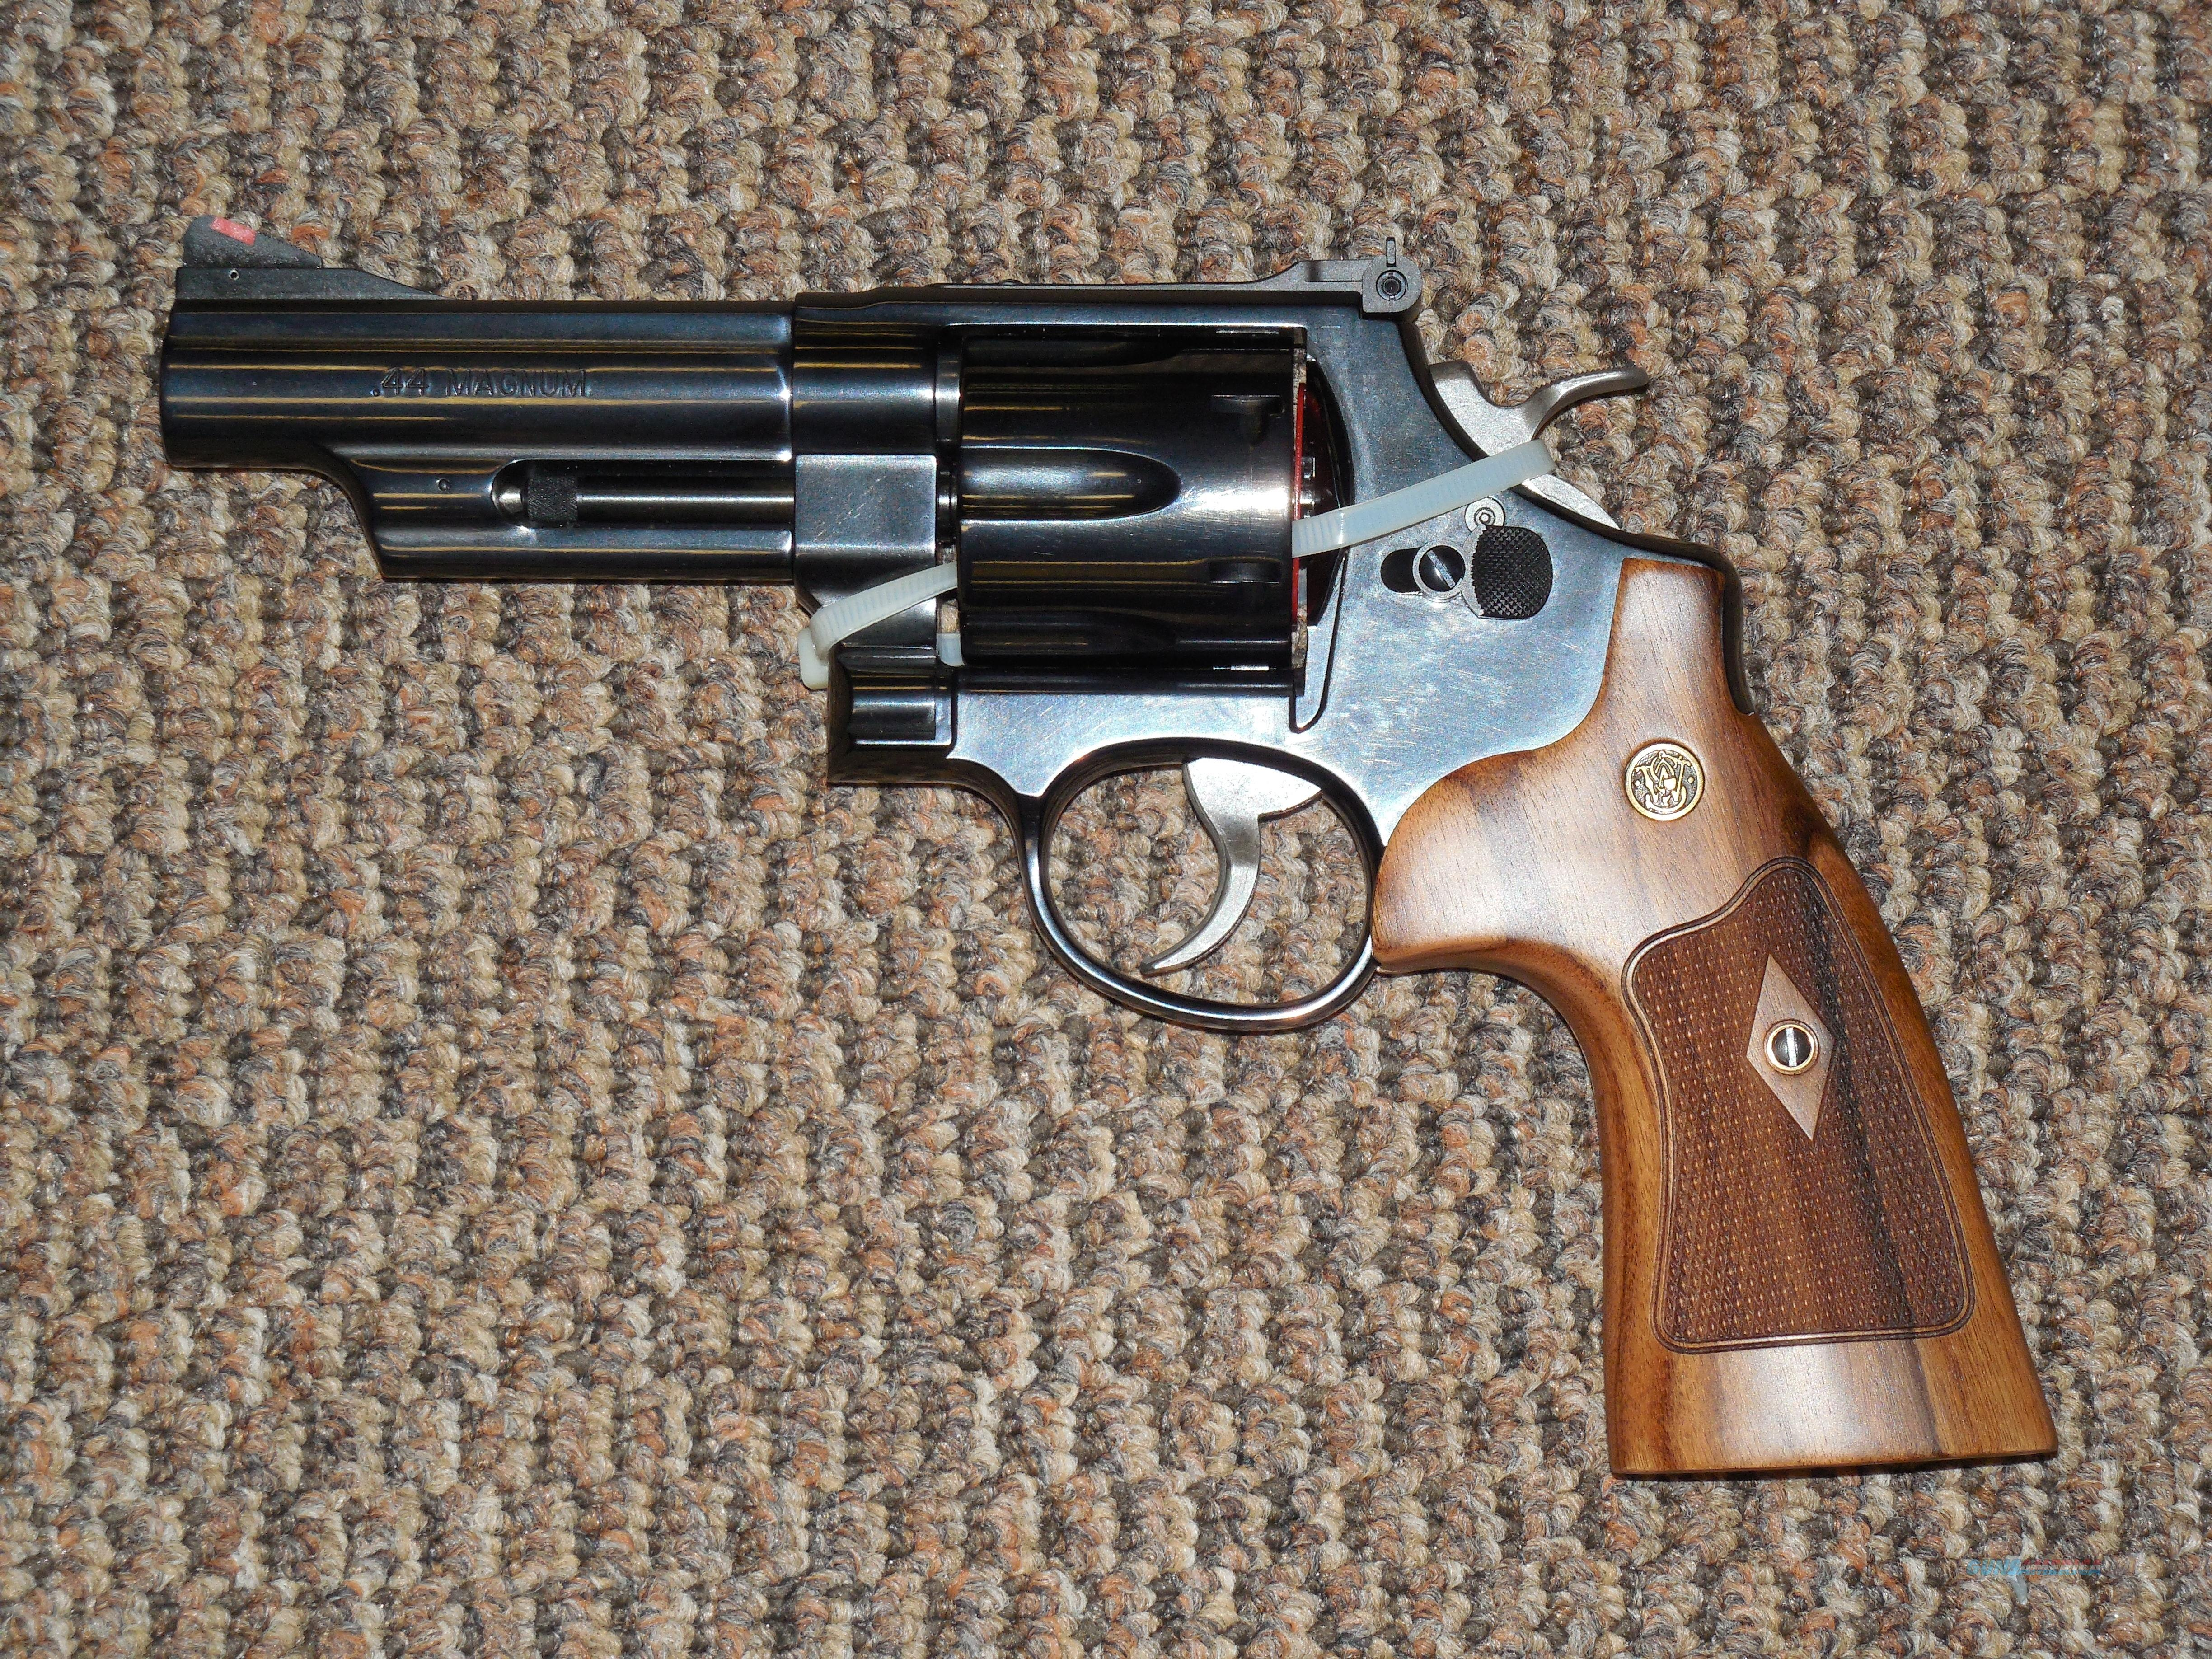 S&W MODEL 29 CLASSIC 4INCH .44 MAGNUM  Guns > Pistols > Smith & Wesson Revolvers > Full Frame Revolver